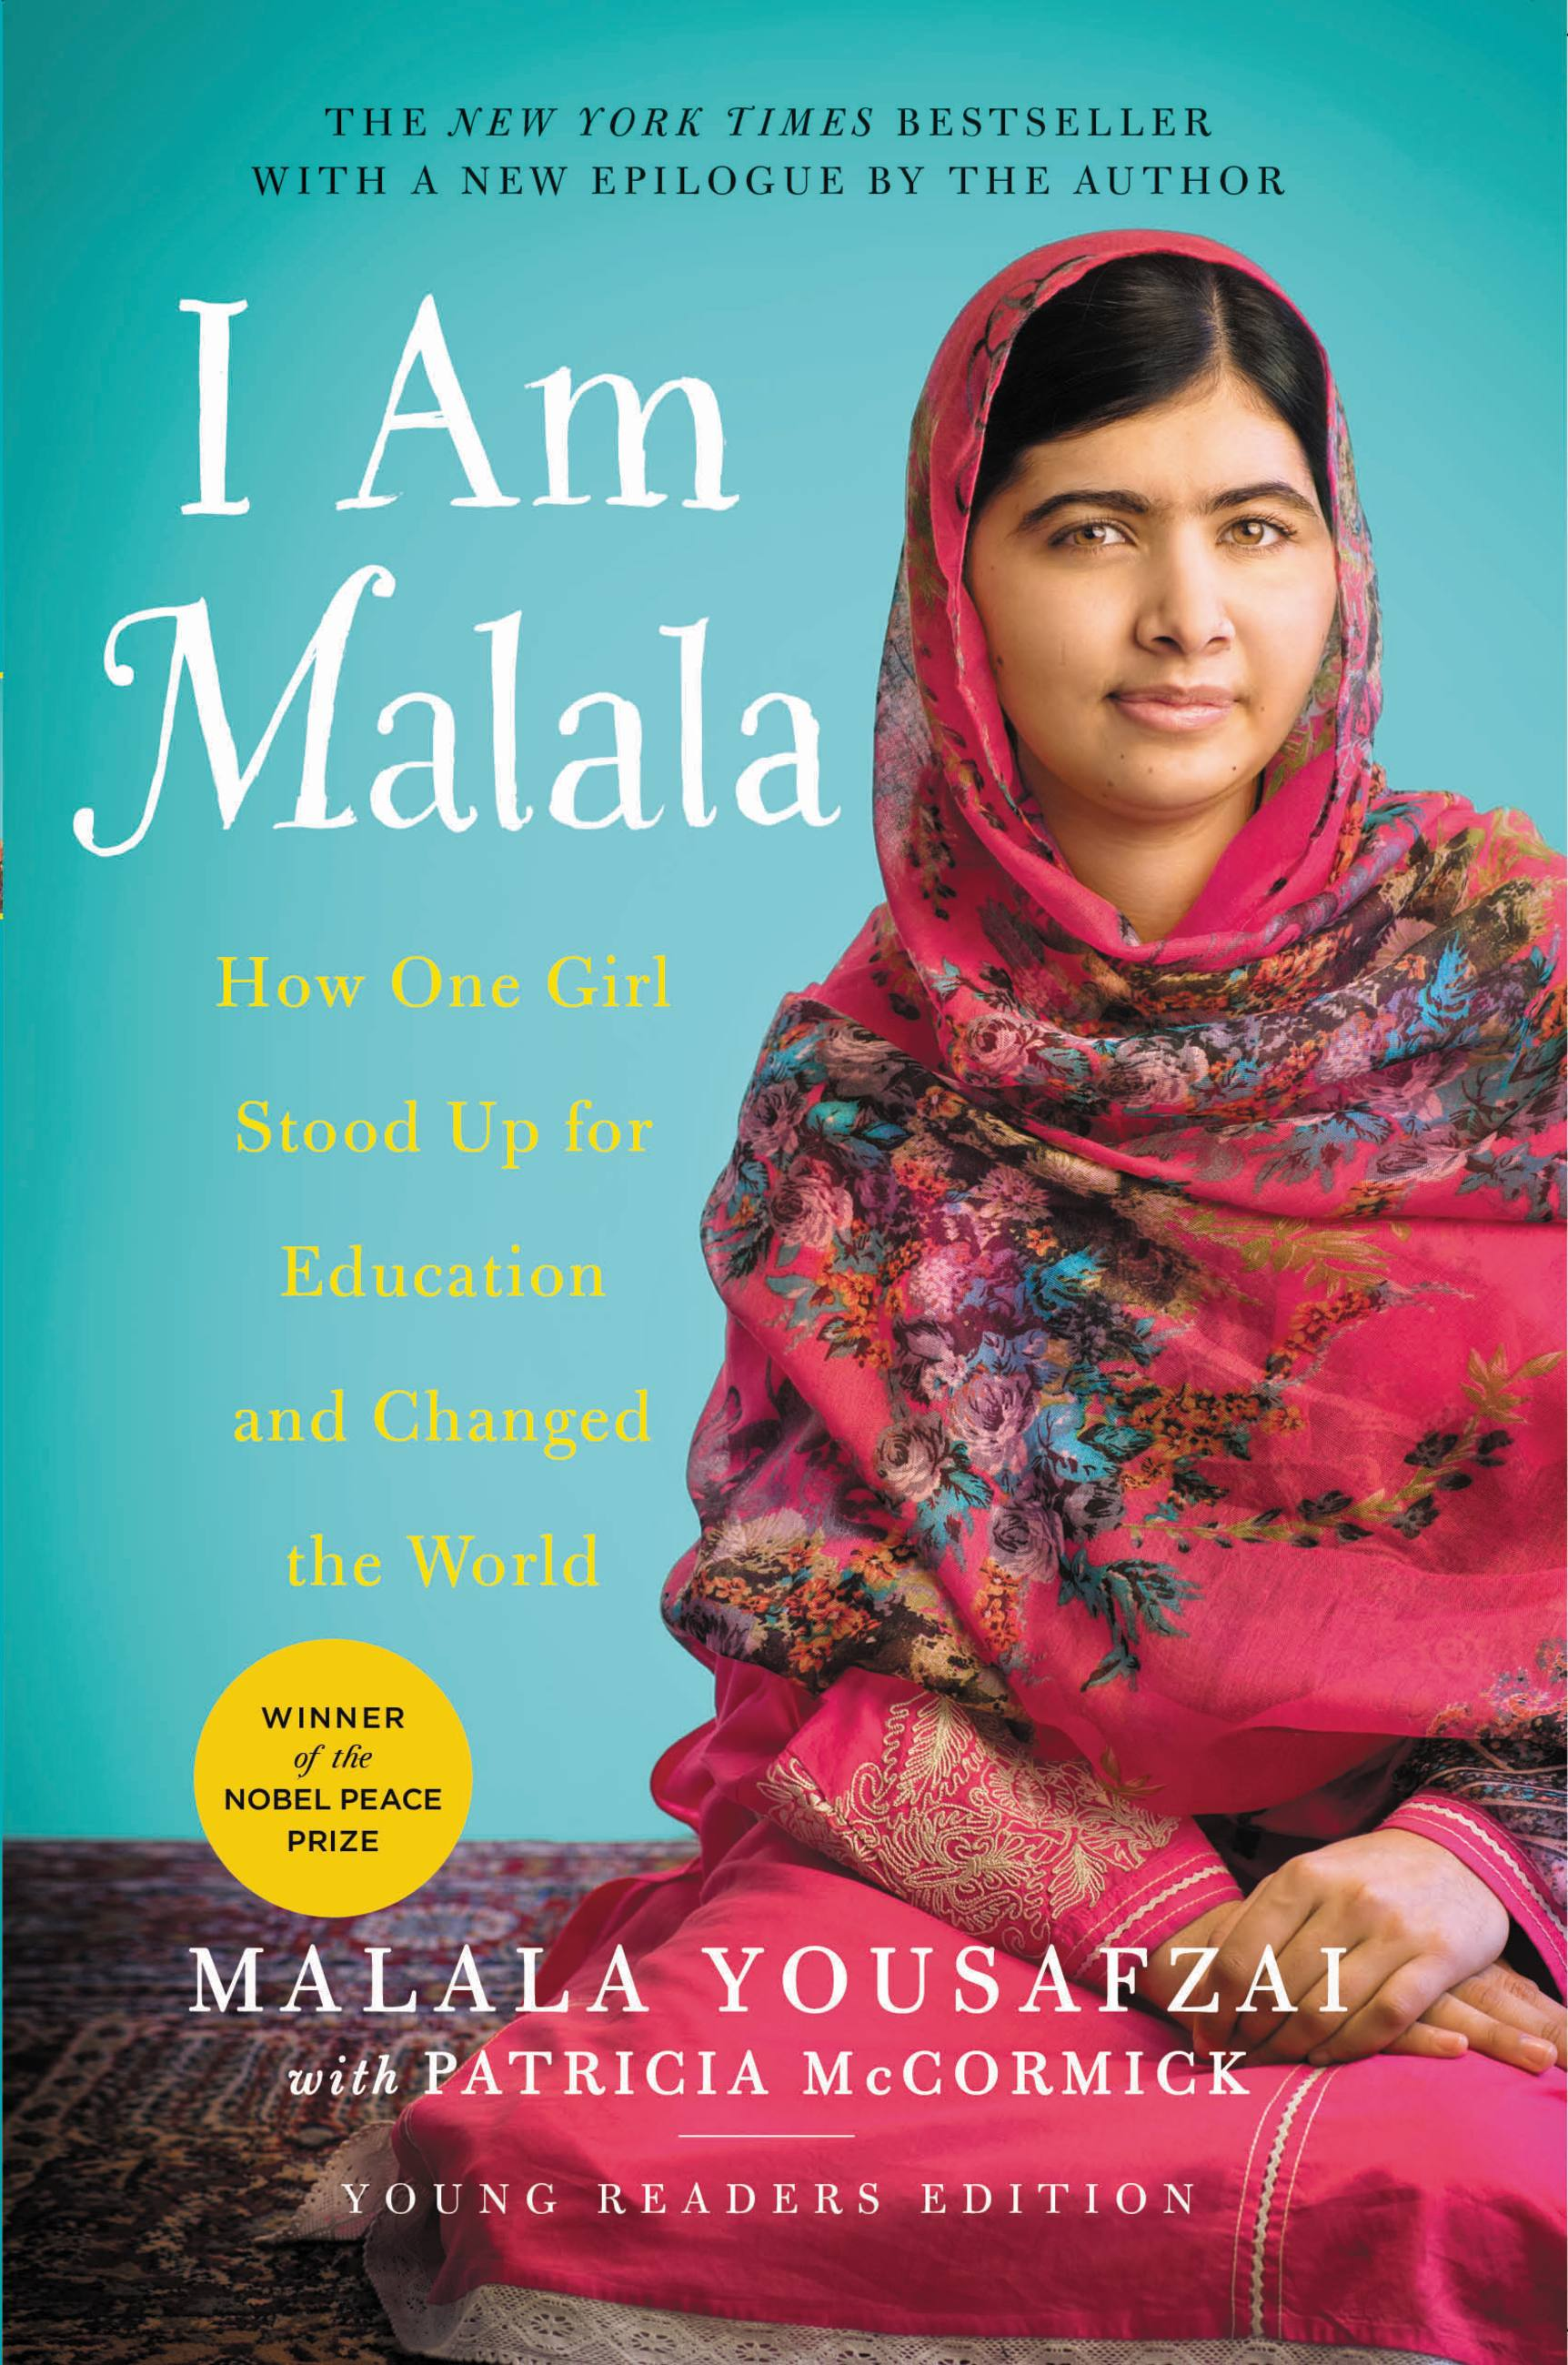 I Am Malala How One Girl Stood Up for Education and Changed the World (Young Readers Edition)